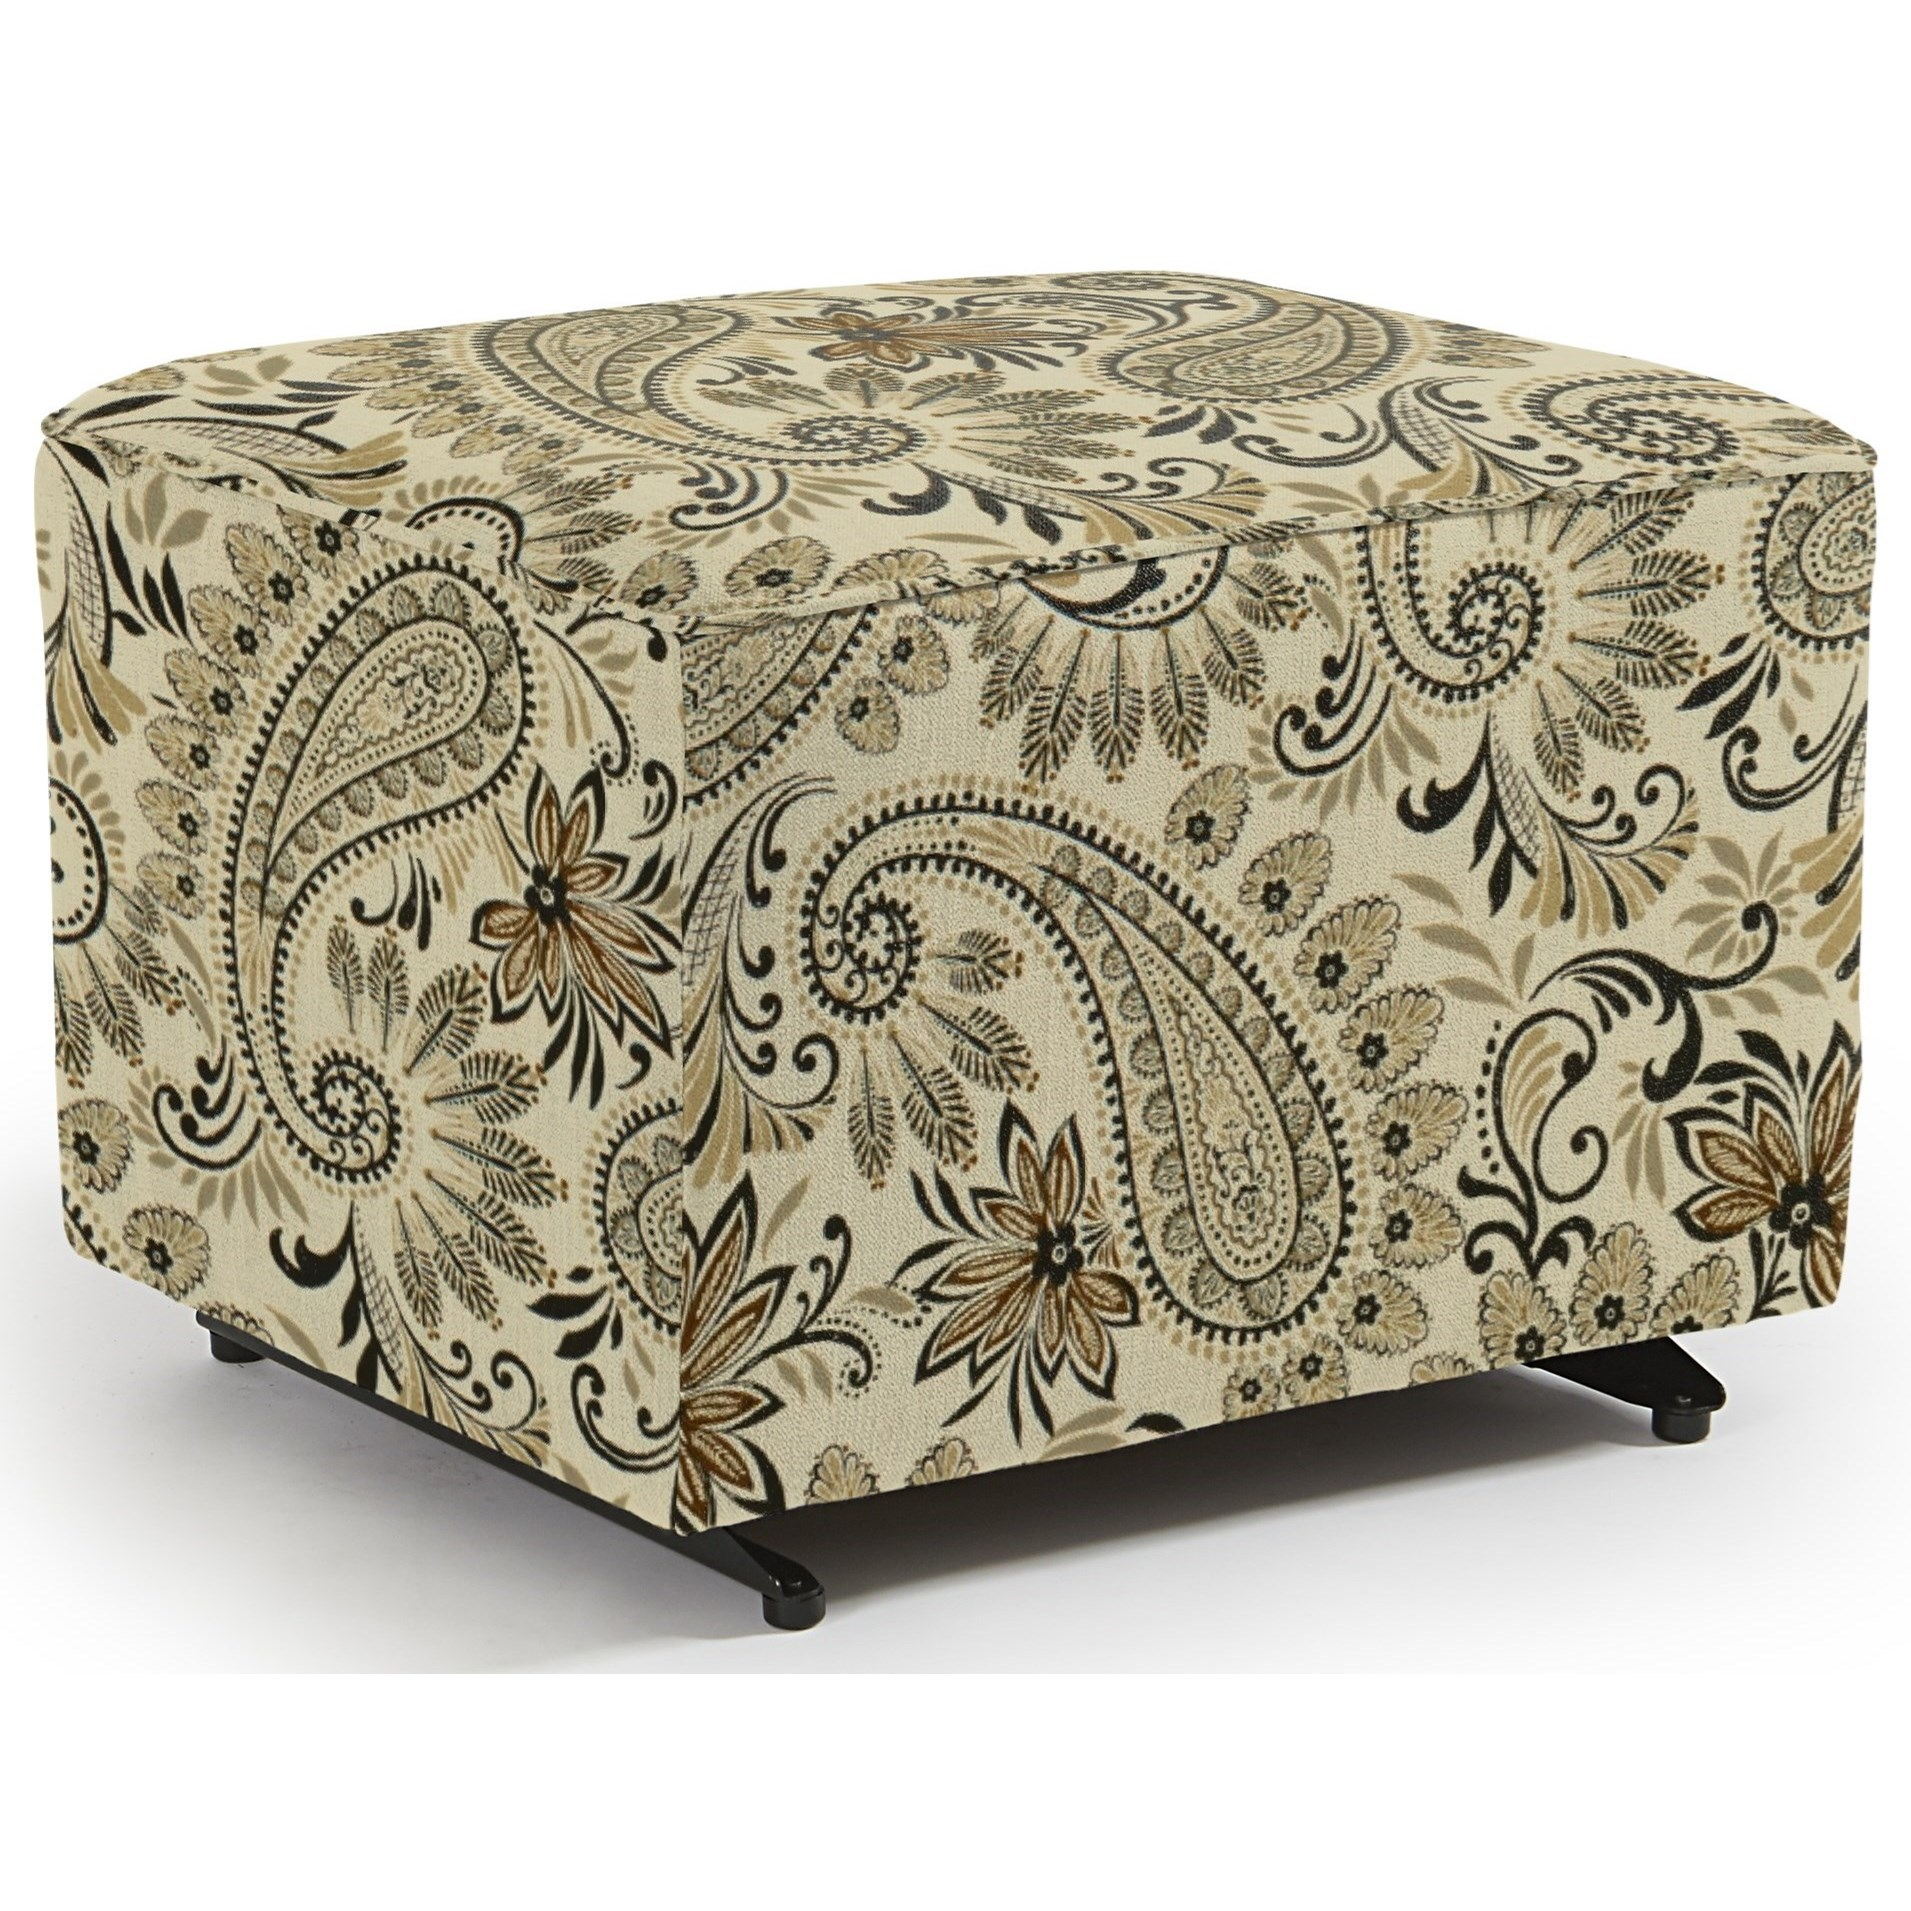 Kacey Ottoman W/ Glider Base by Best Home Furnishings at Lucas Furniture & Mattress